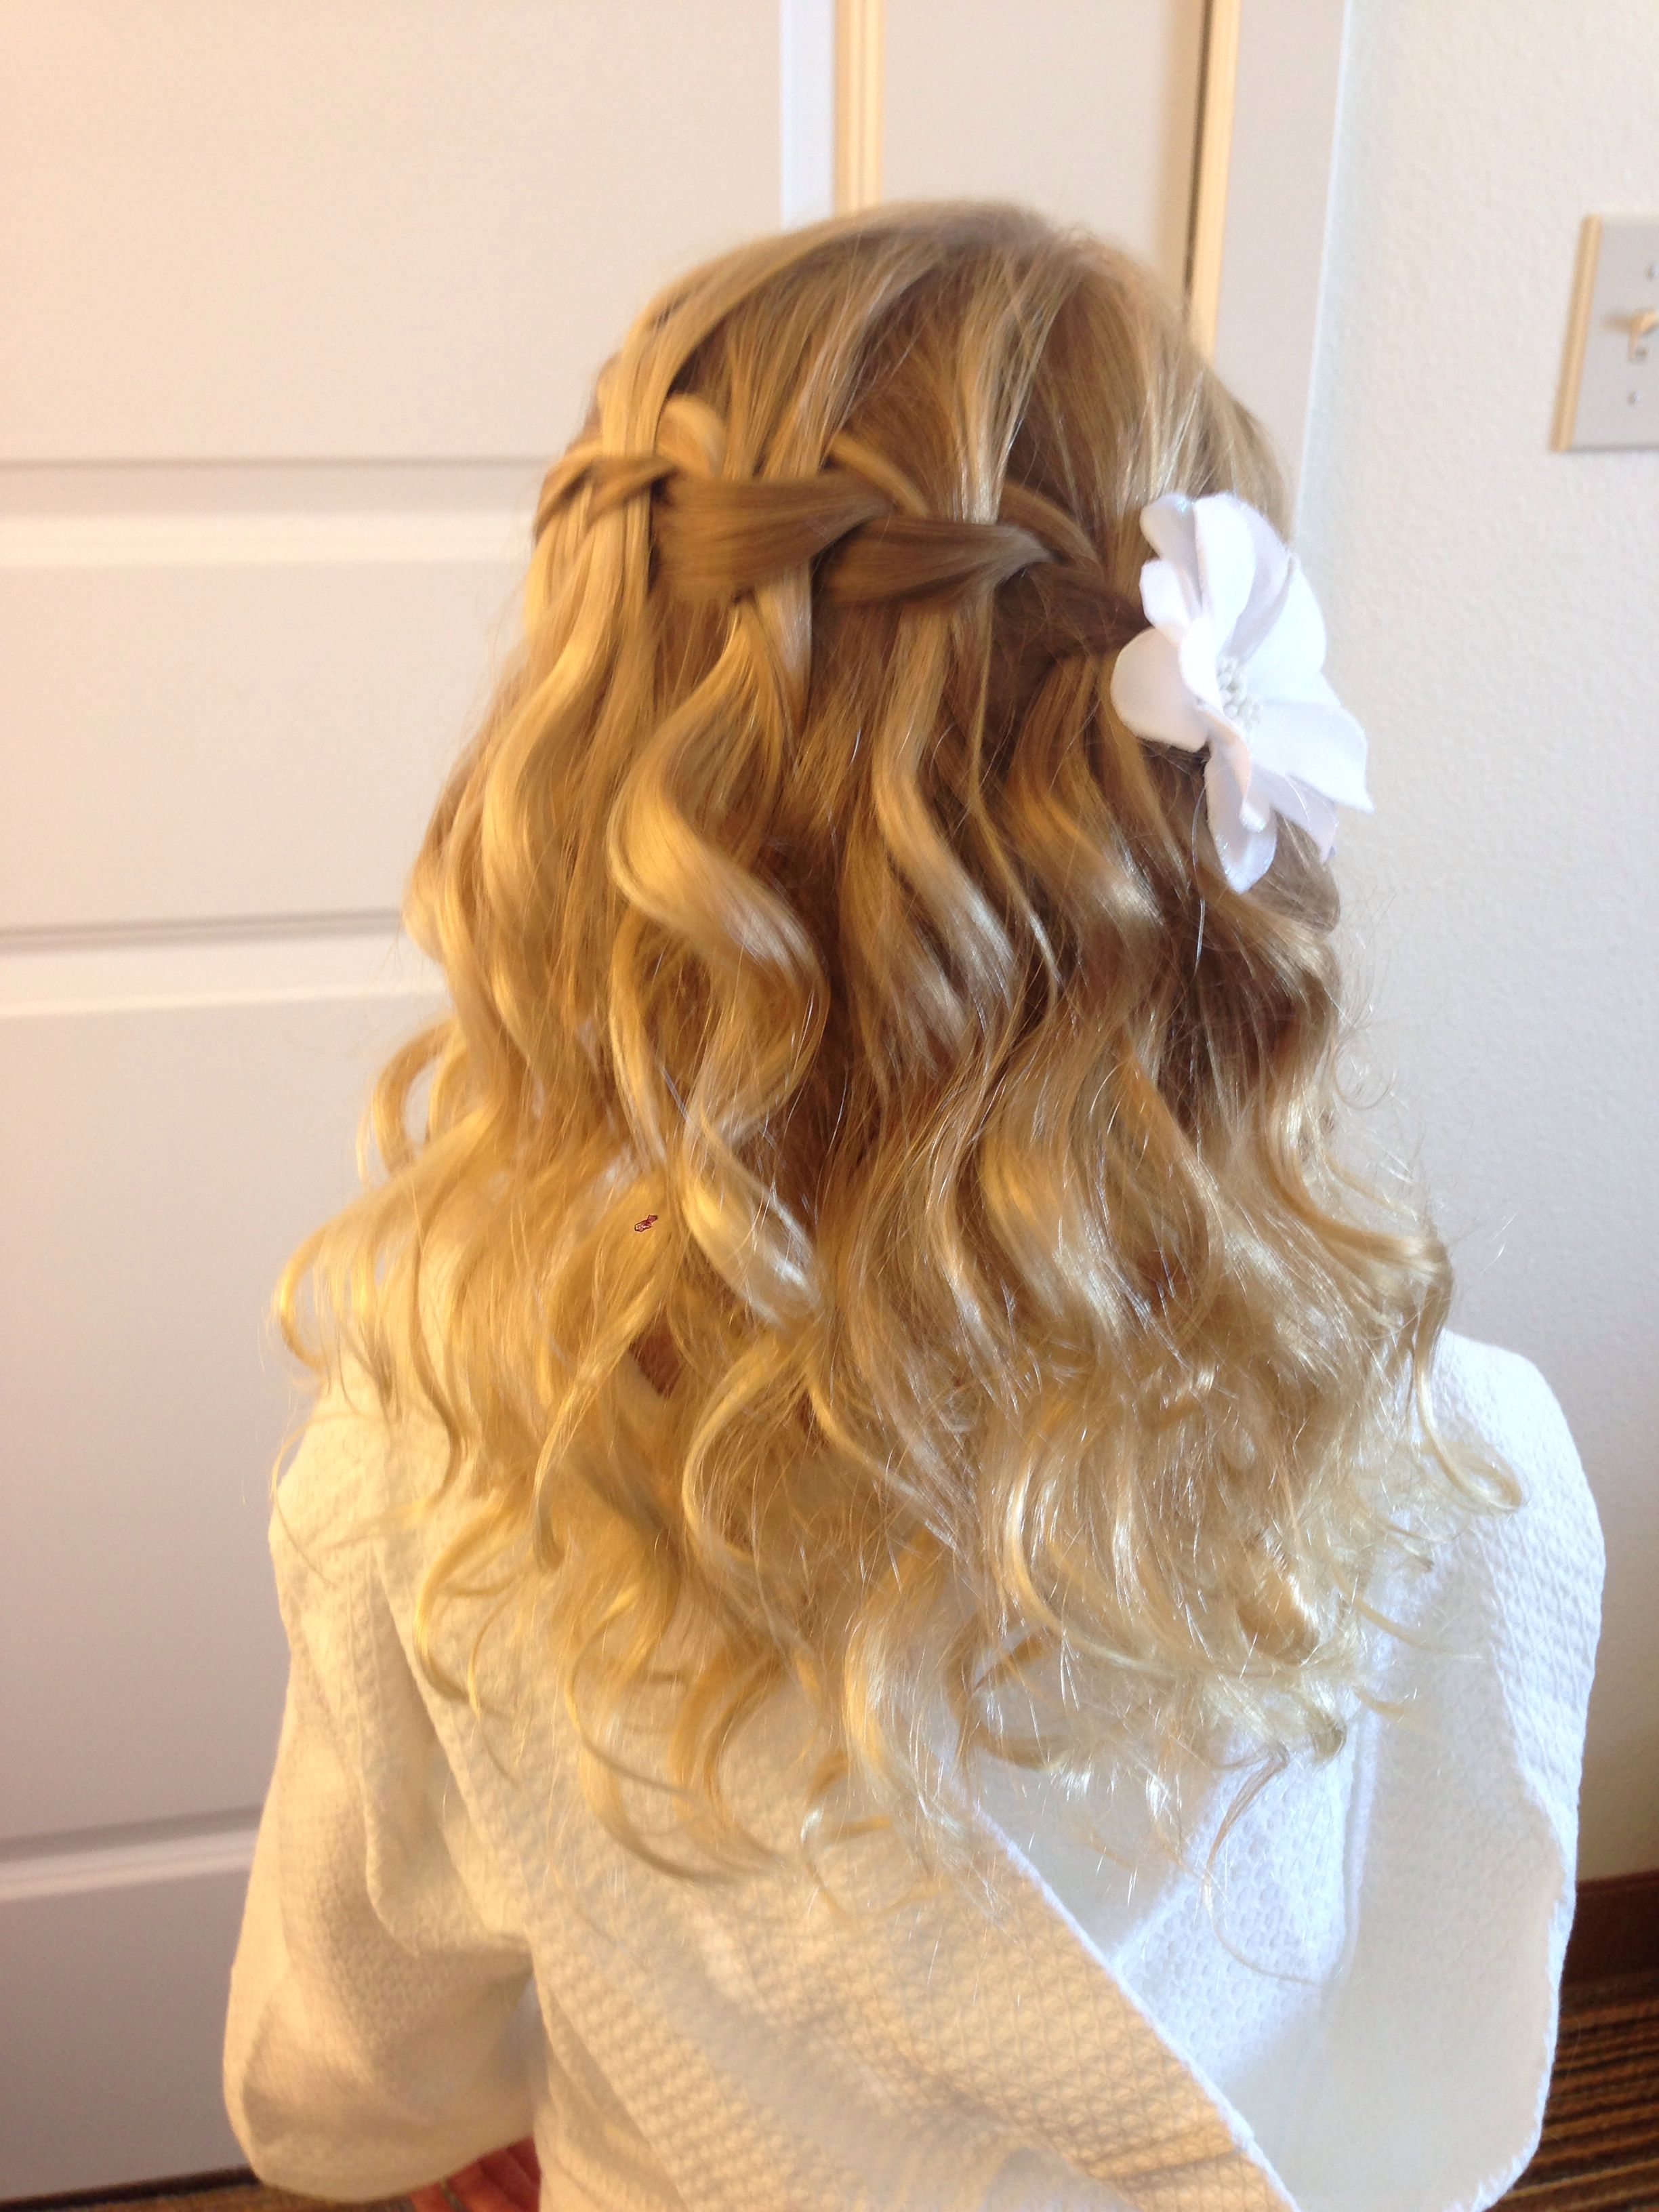 15 stunning waterfall braids | kids | kids hairstyles for